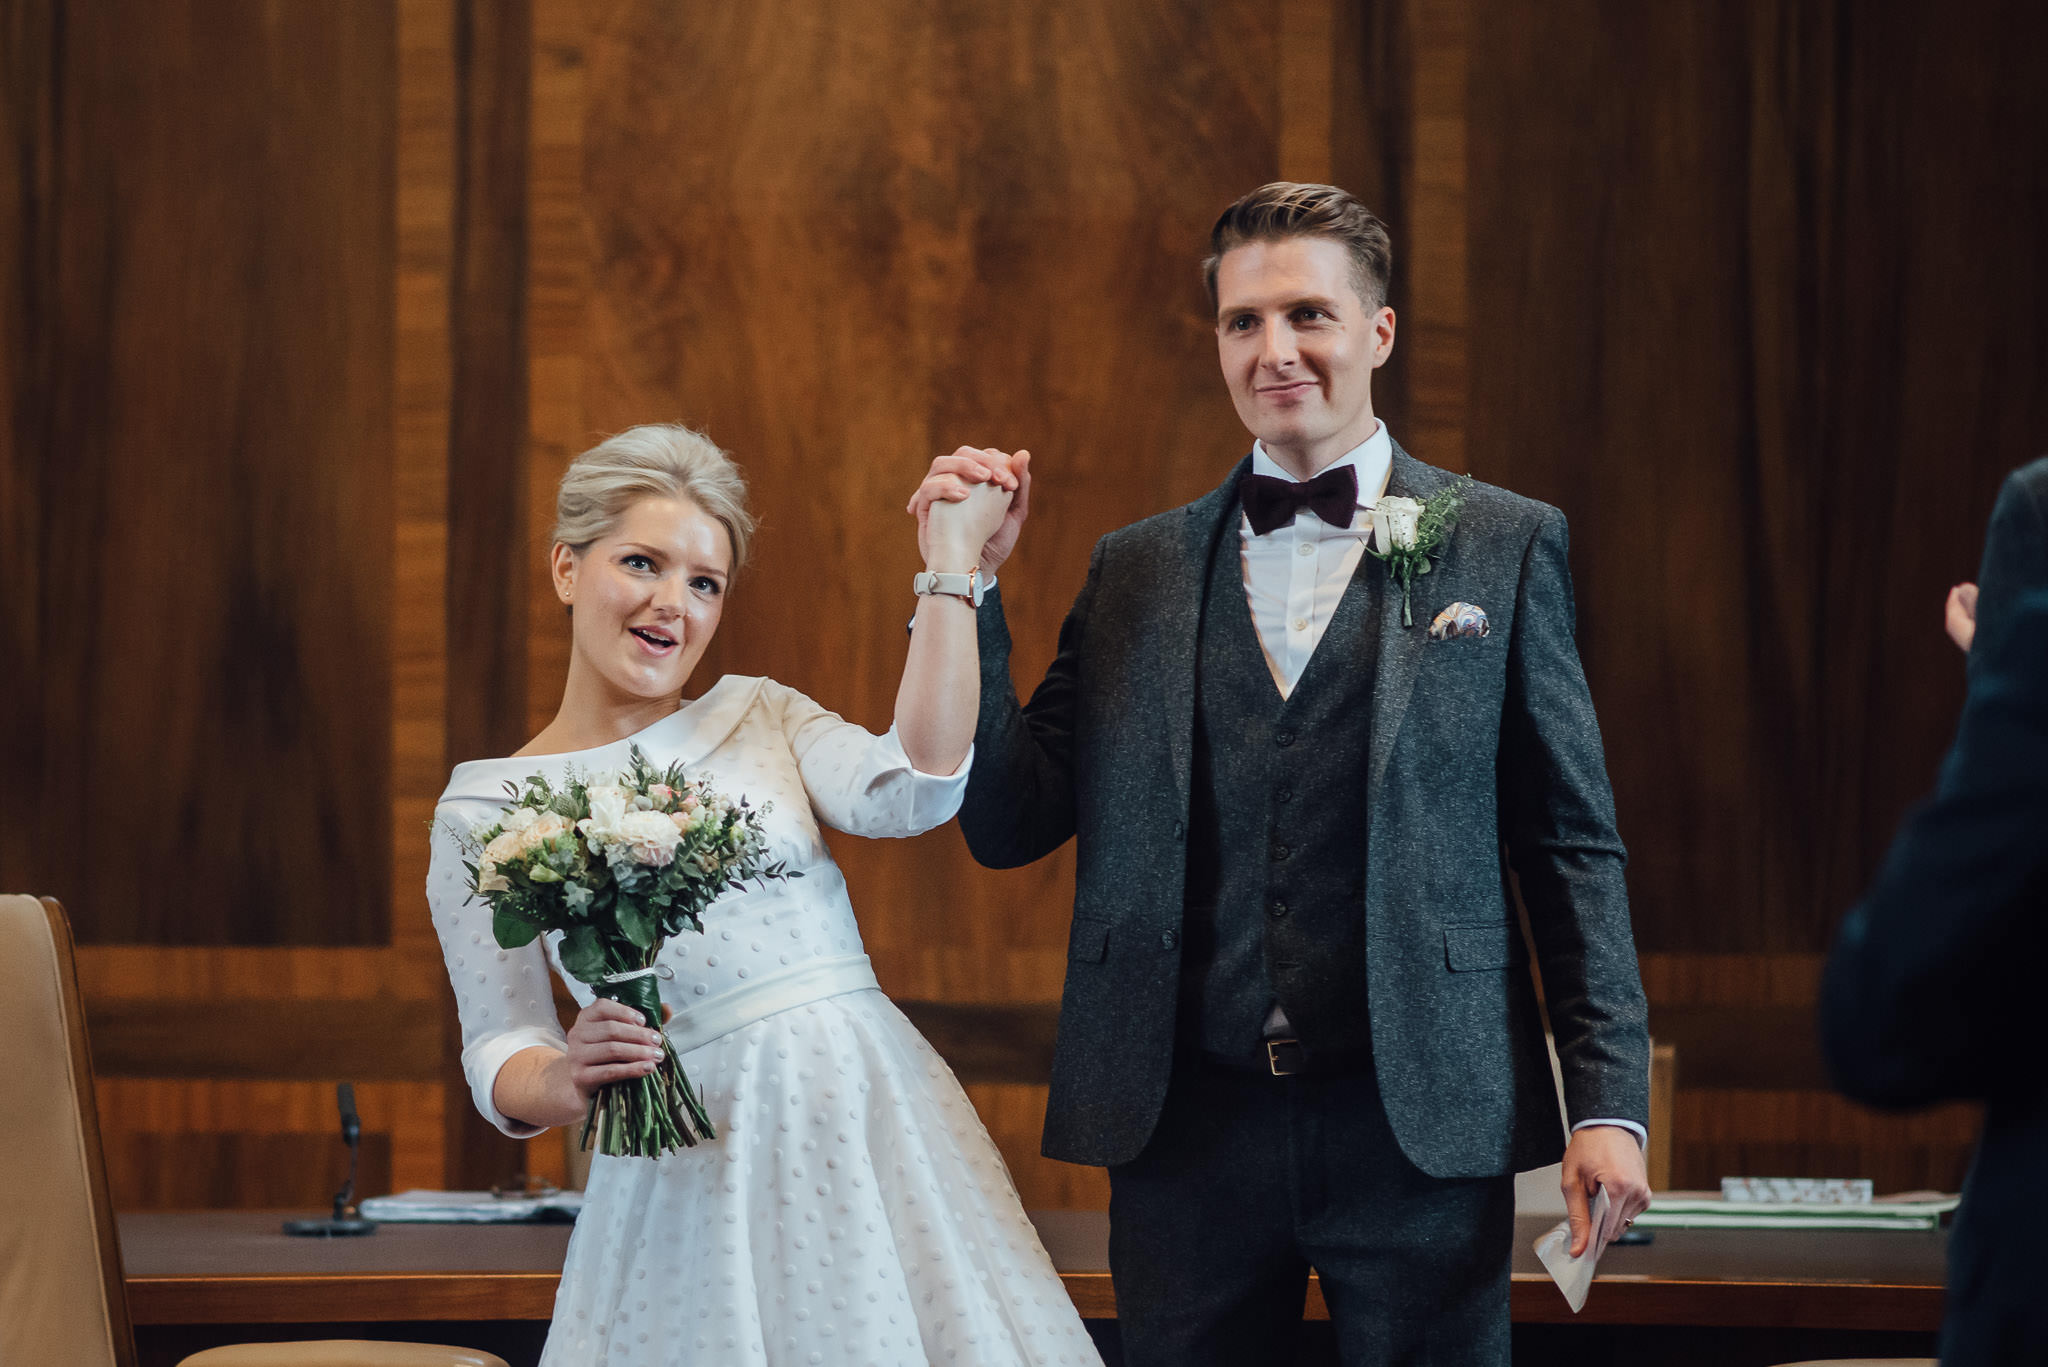 Wedding pictures in stoke newington town hall wedding by creative and alternative london wedding photographer the shannons photography